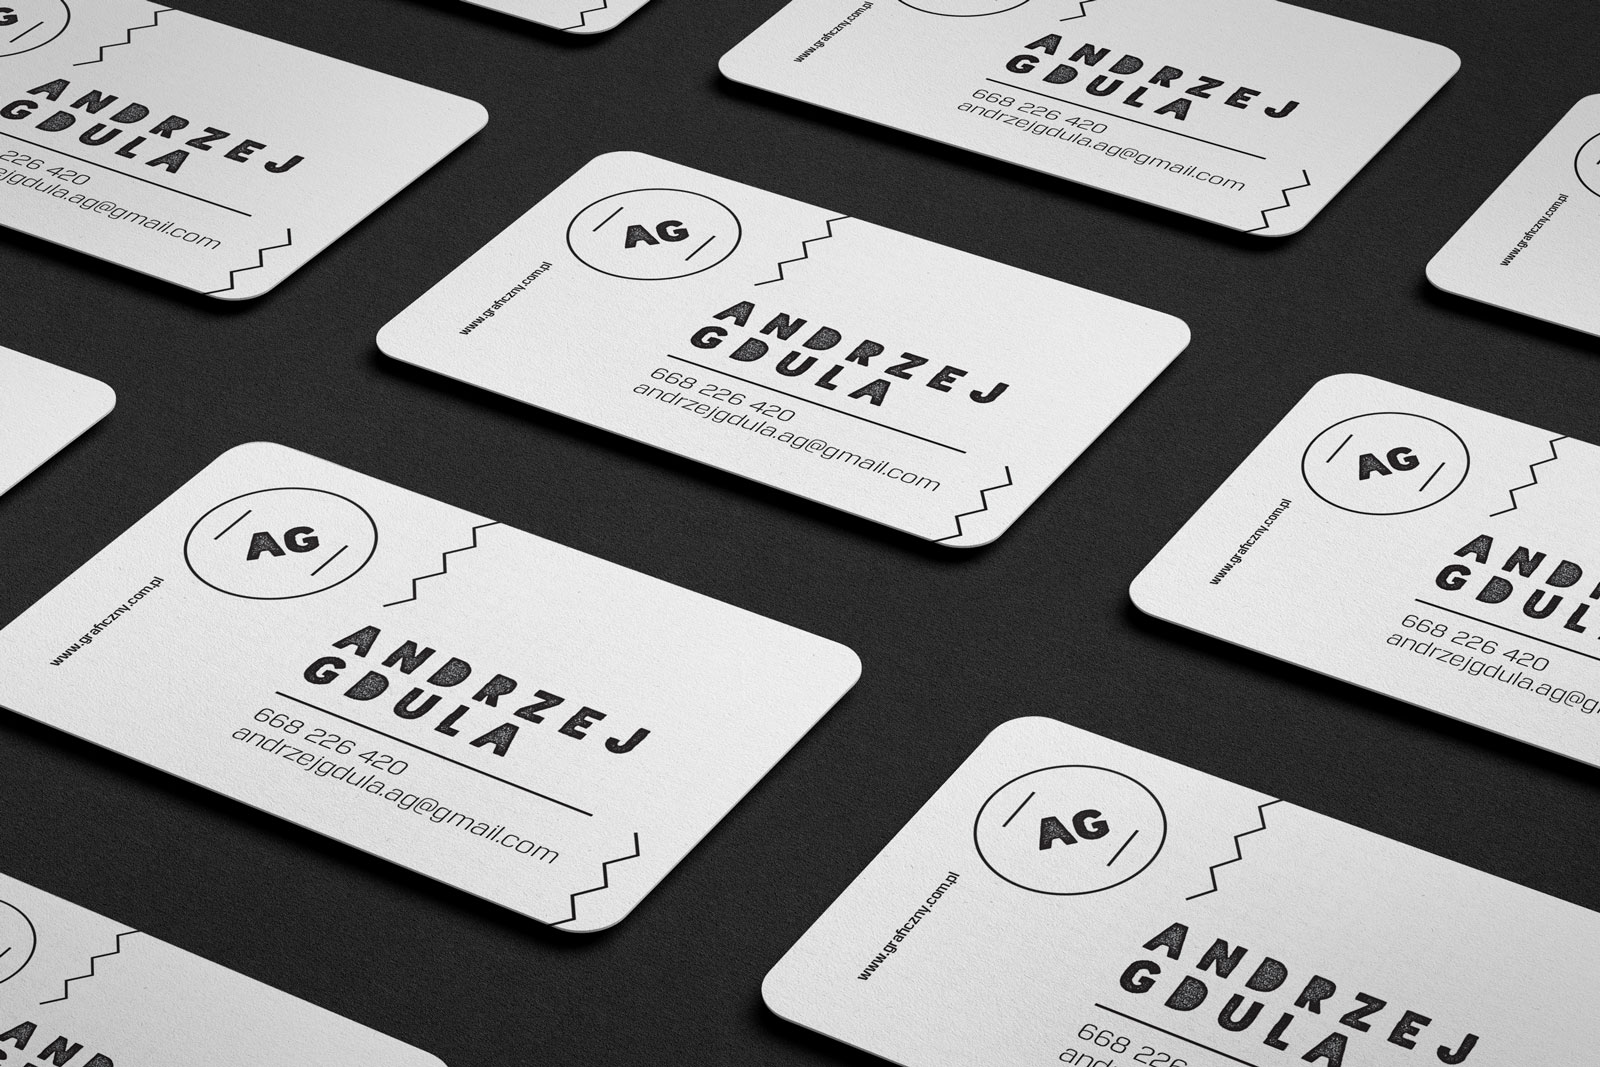 Free Rounded Corner Business Card Mockup PSD - Good Mockups